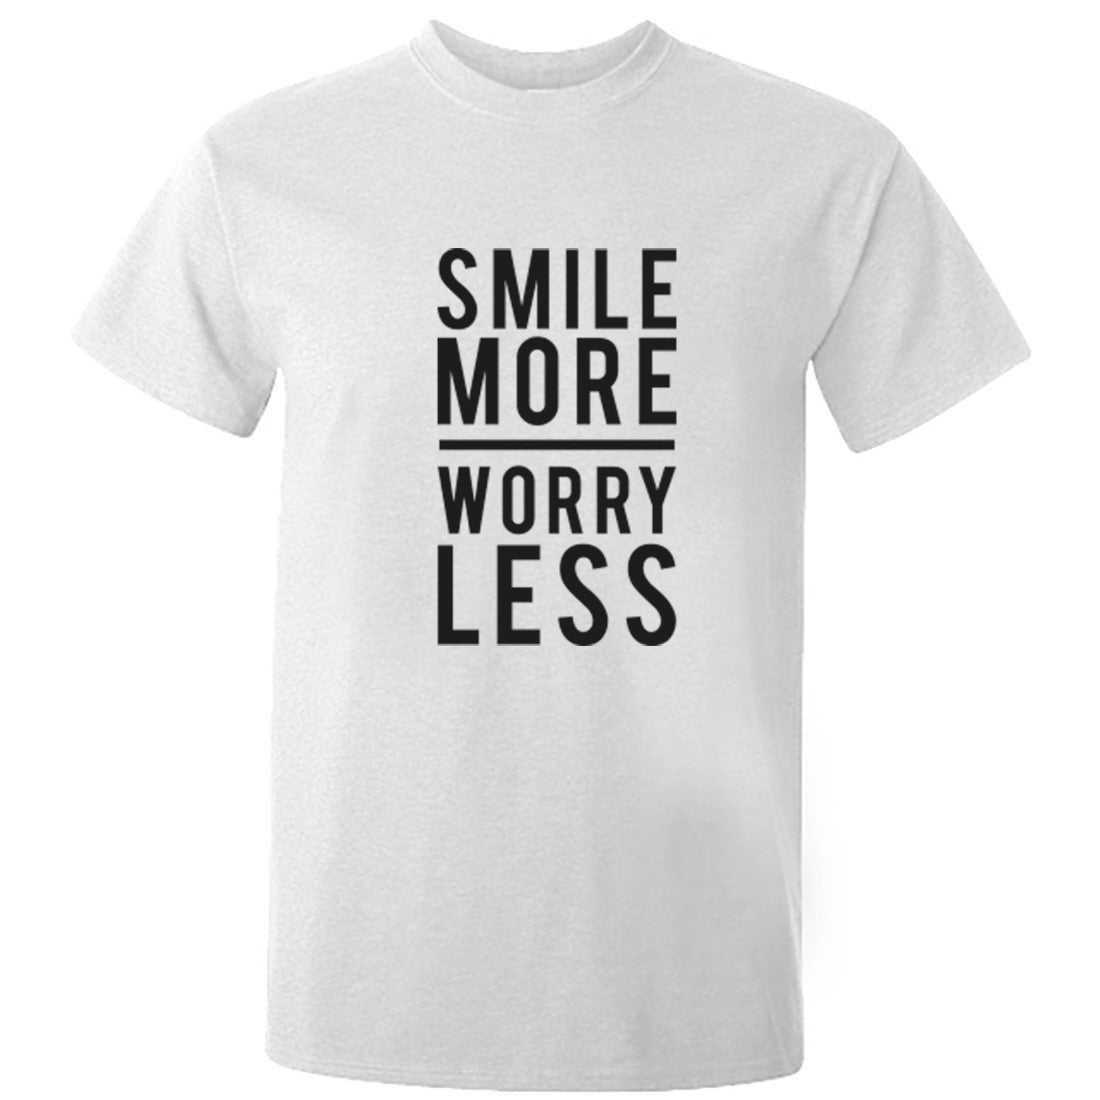 Smile More  Worry Less Unisex Fit T-Shirt K0416 - Illustrated Identity Ltd.